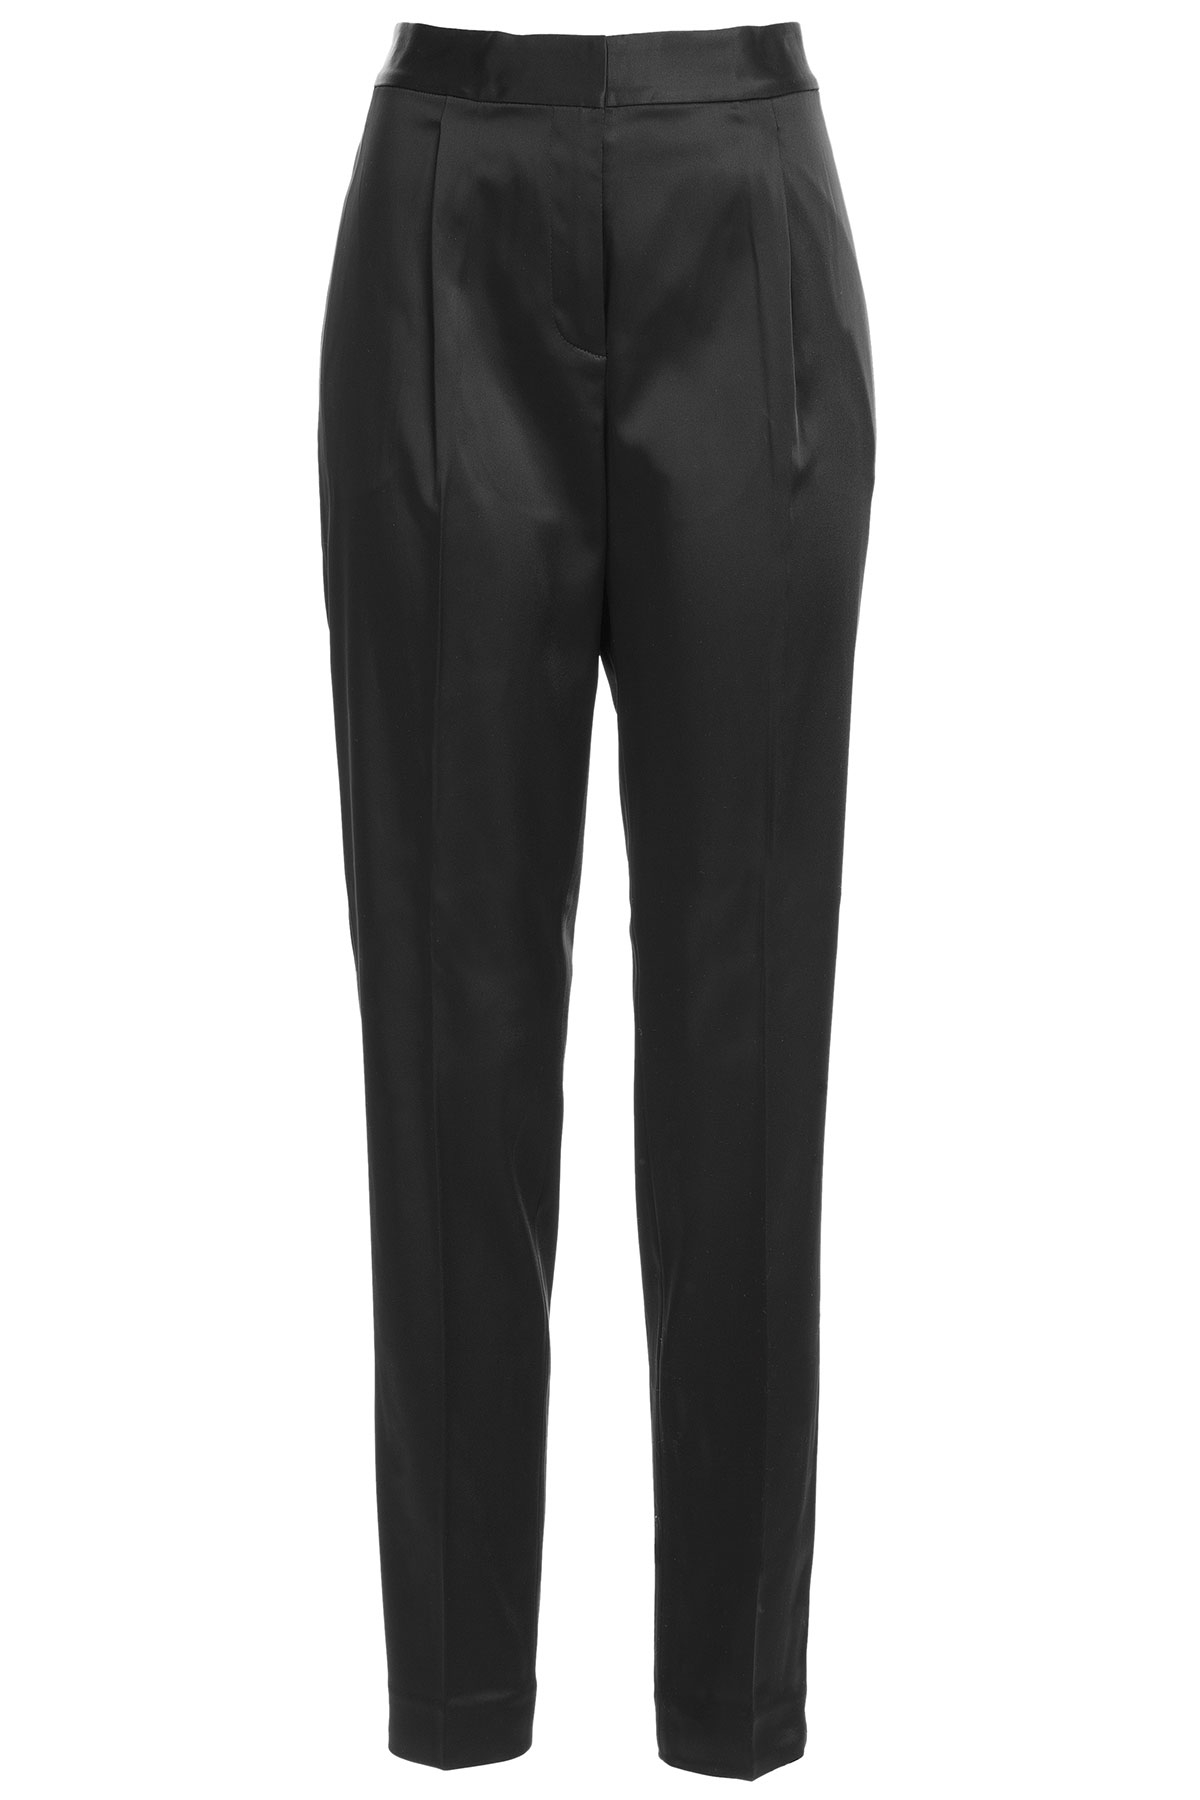 T by alexander wang Satin Pants - Black in Black | Lyst